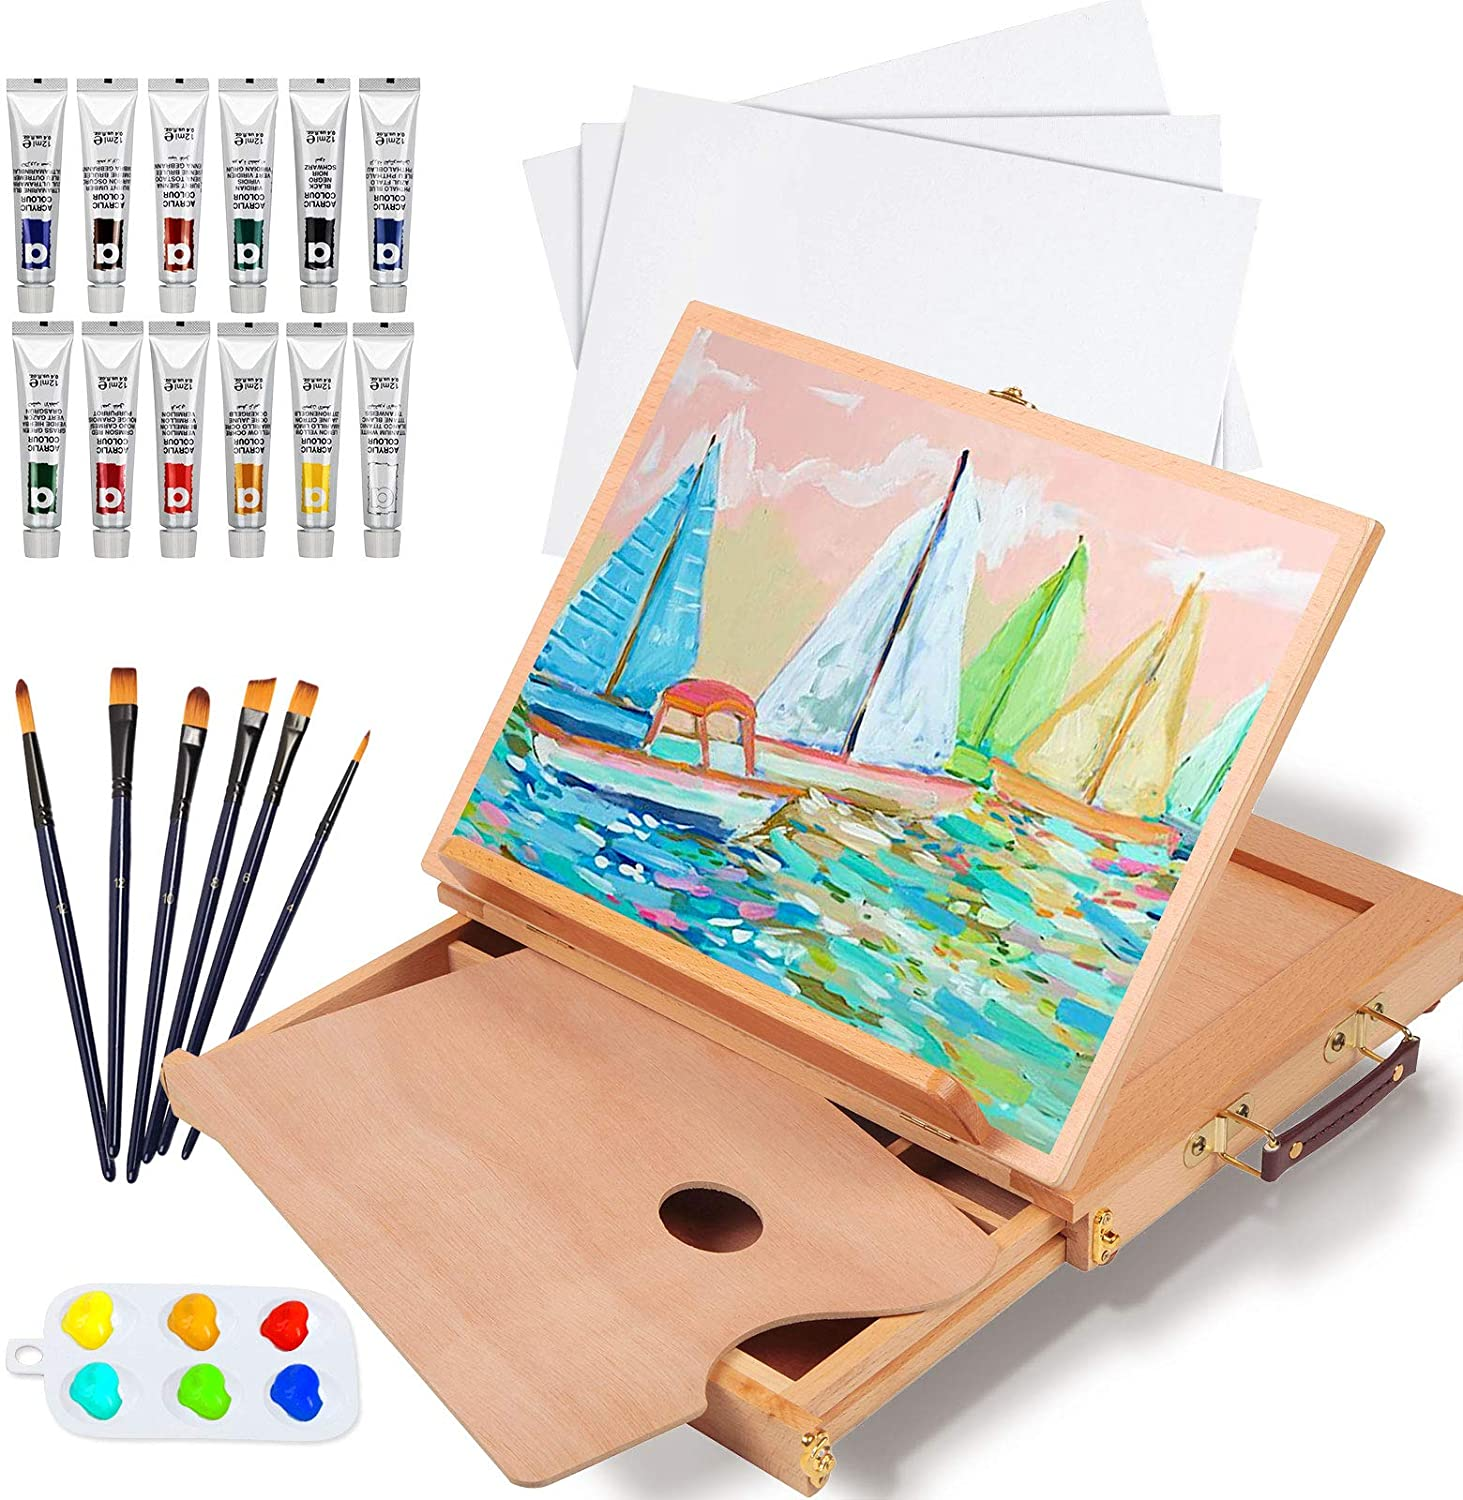 Falling in Art Direct store Beechwood Tabletop Easel Set Tubes 12 with Acryli Ranking TOP14